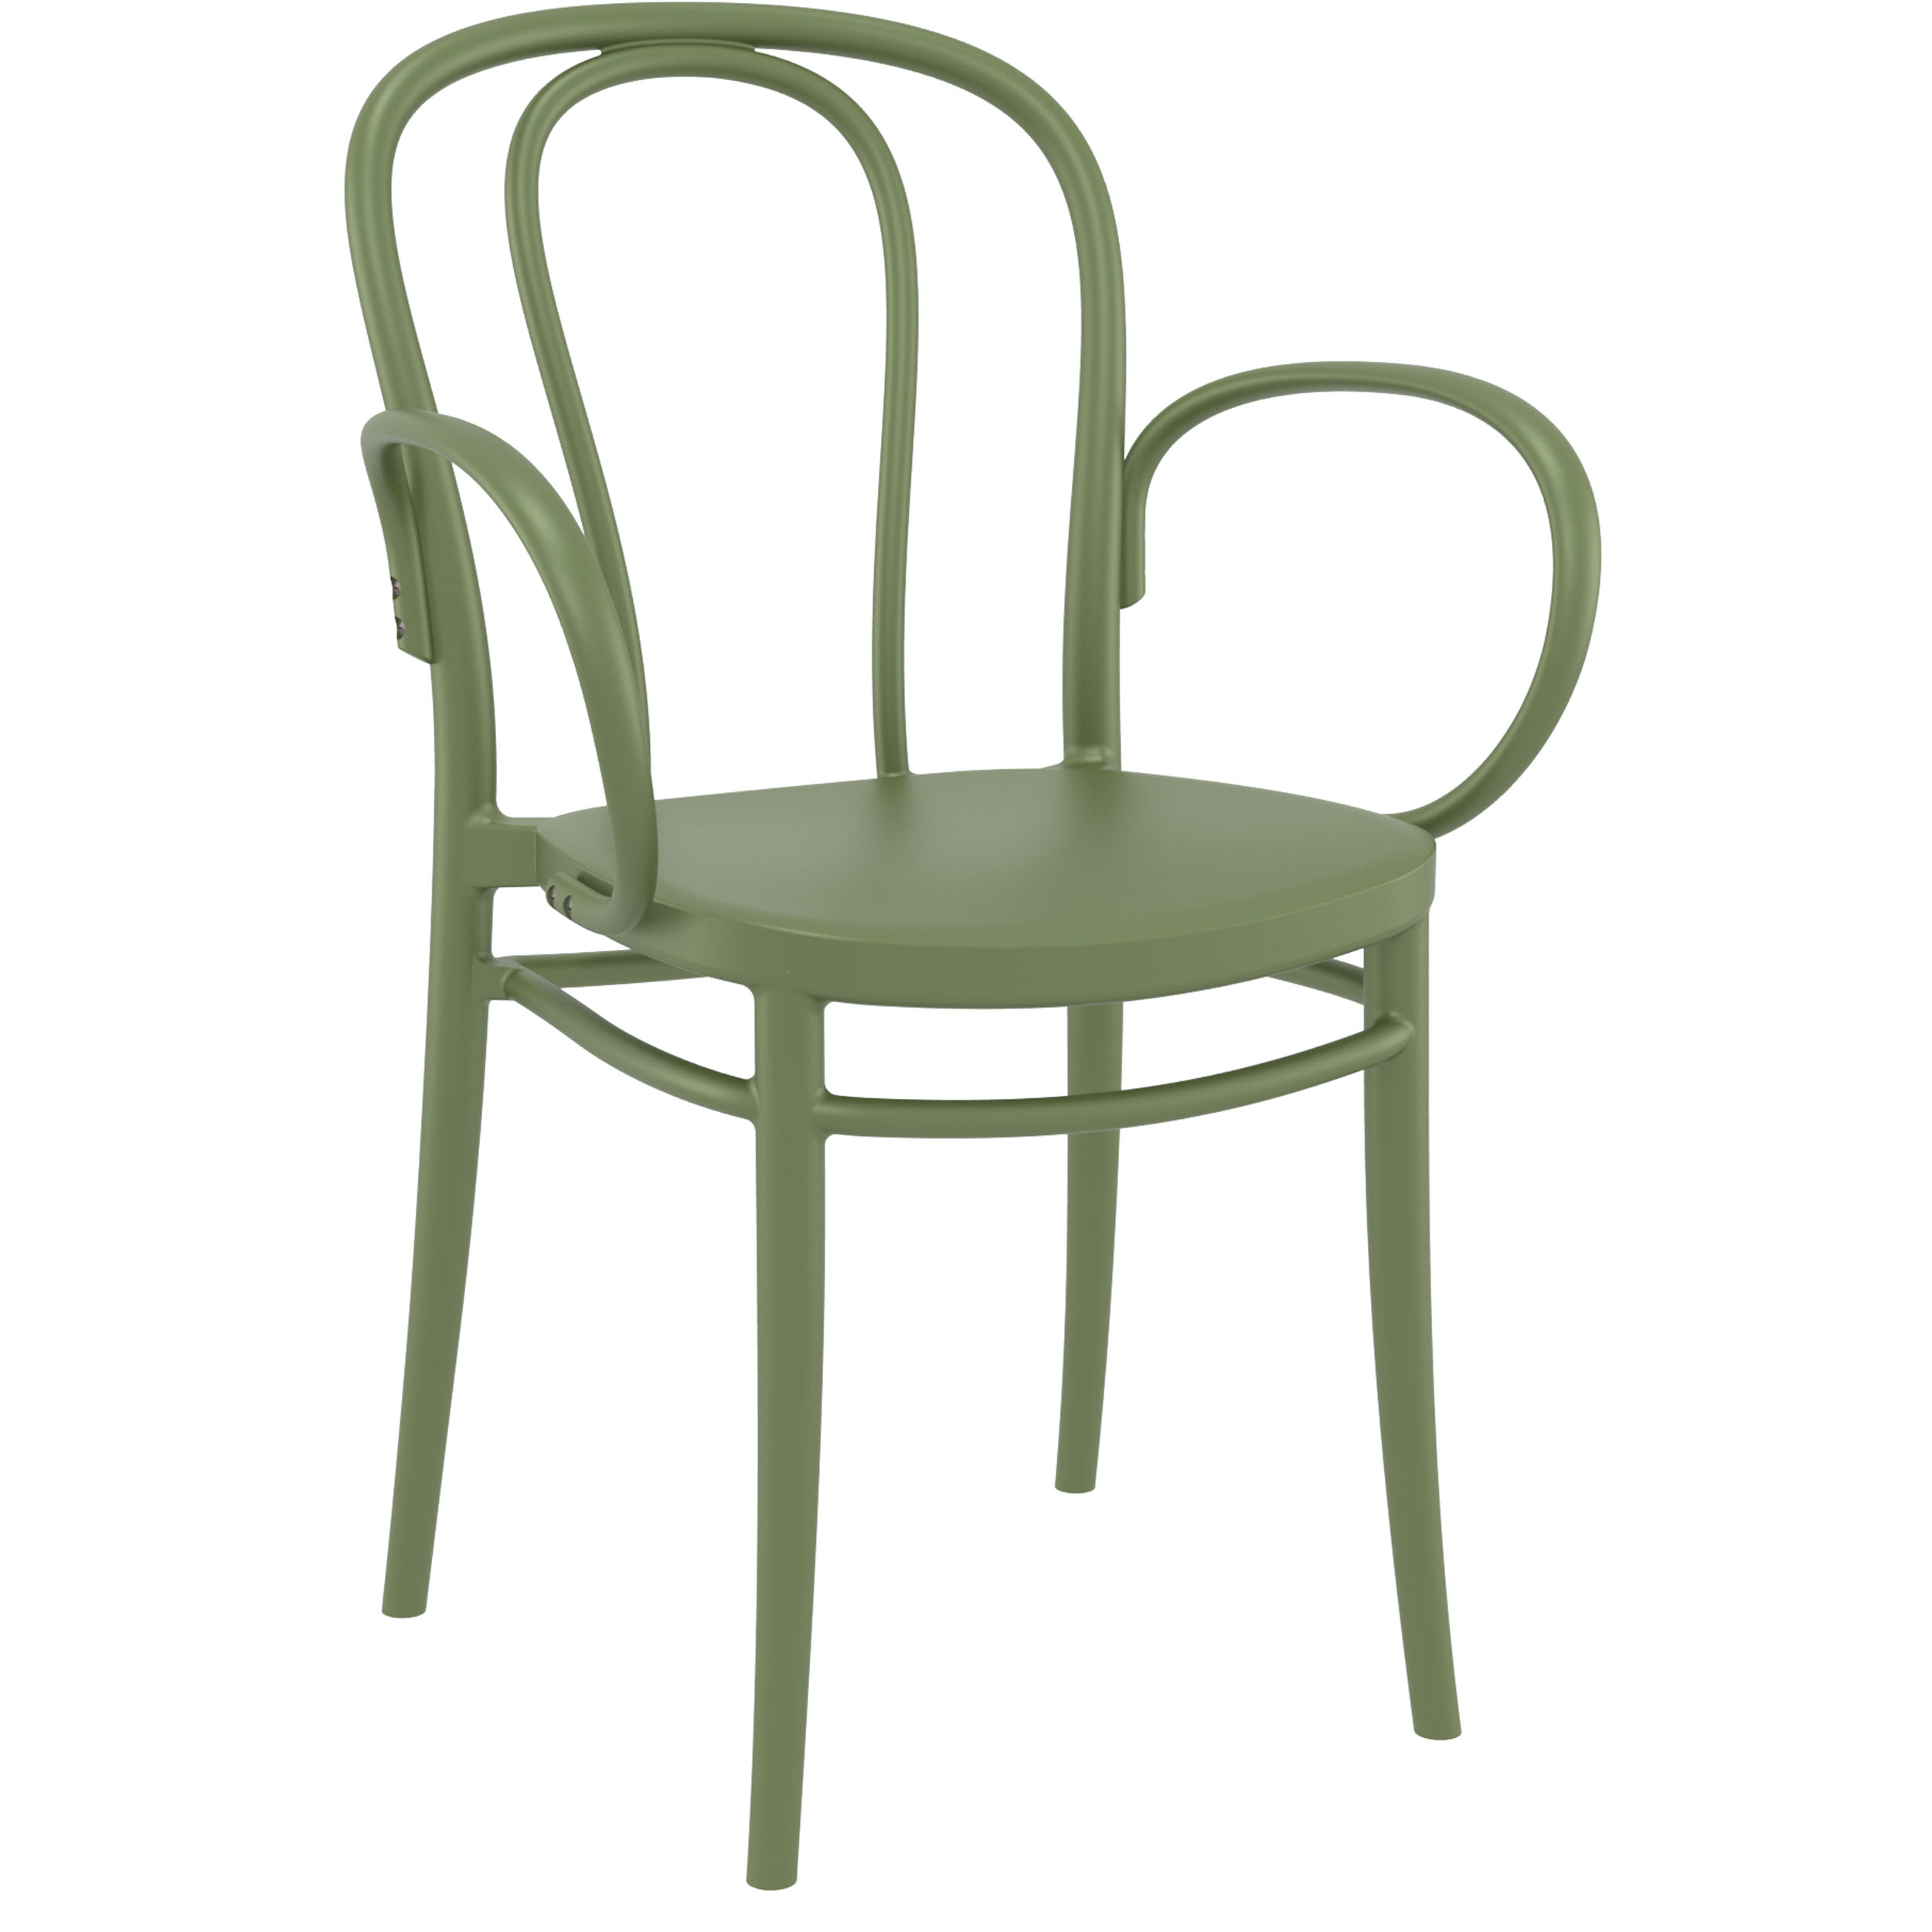 Victor XL Chair - Olive Green